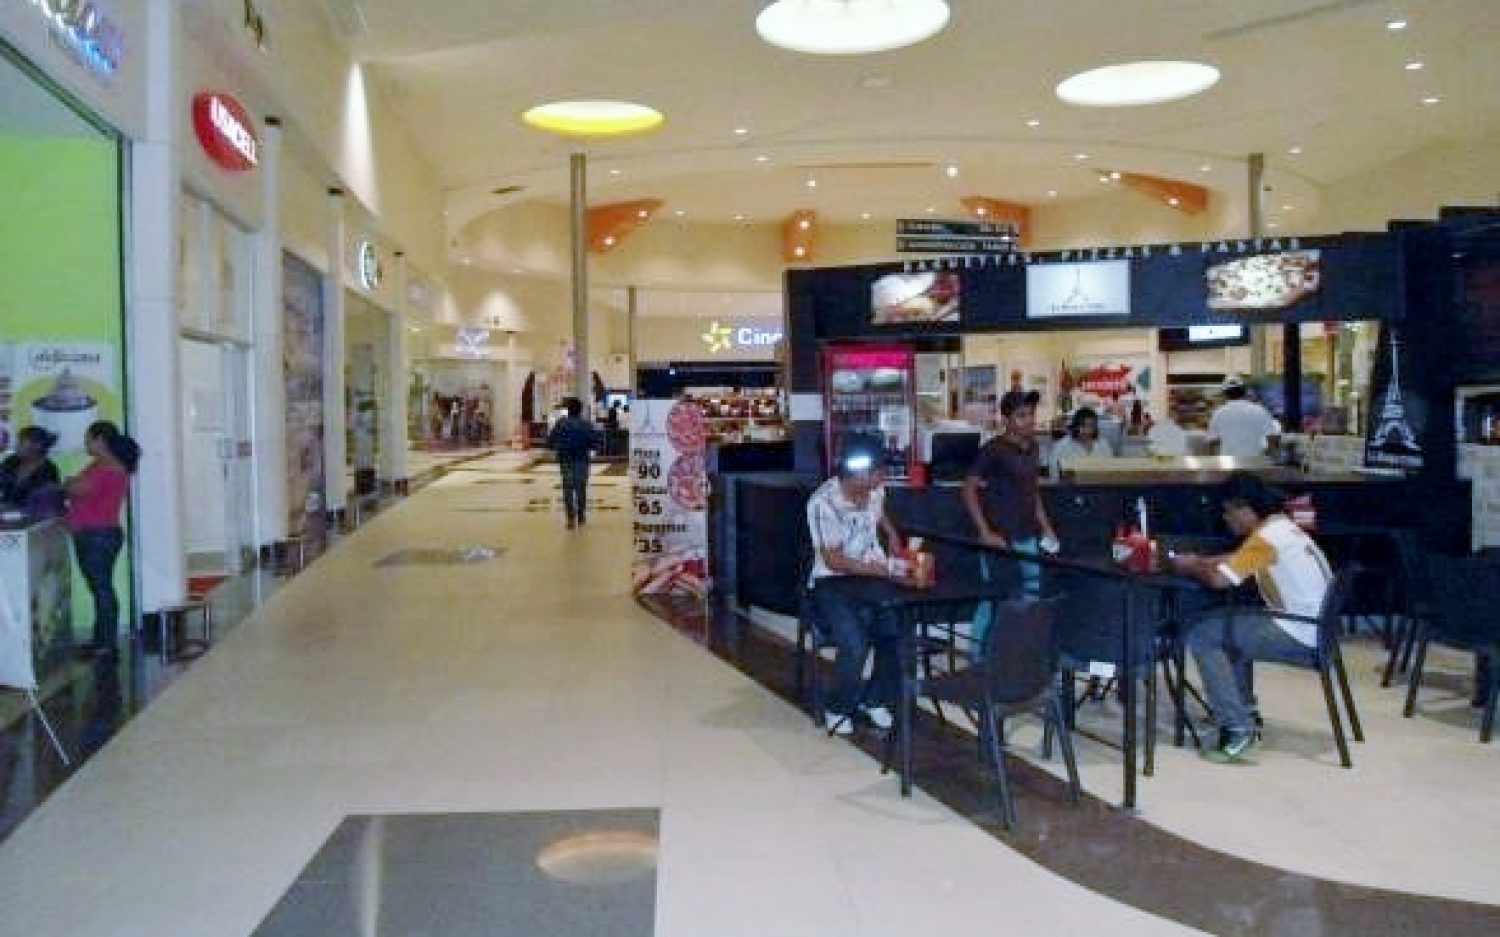 Co-Plaza Sendero Villahermosa (34)